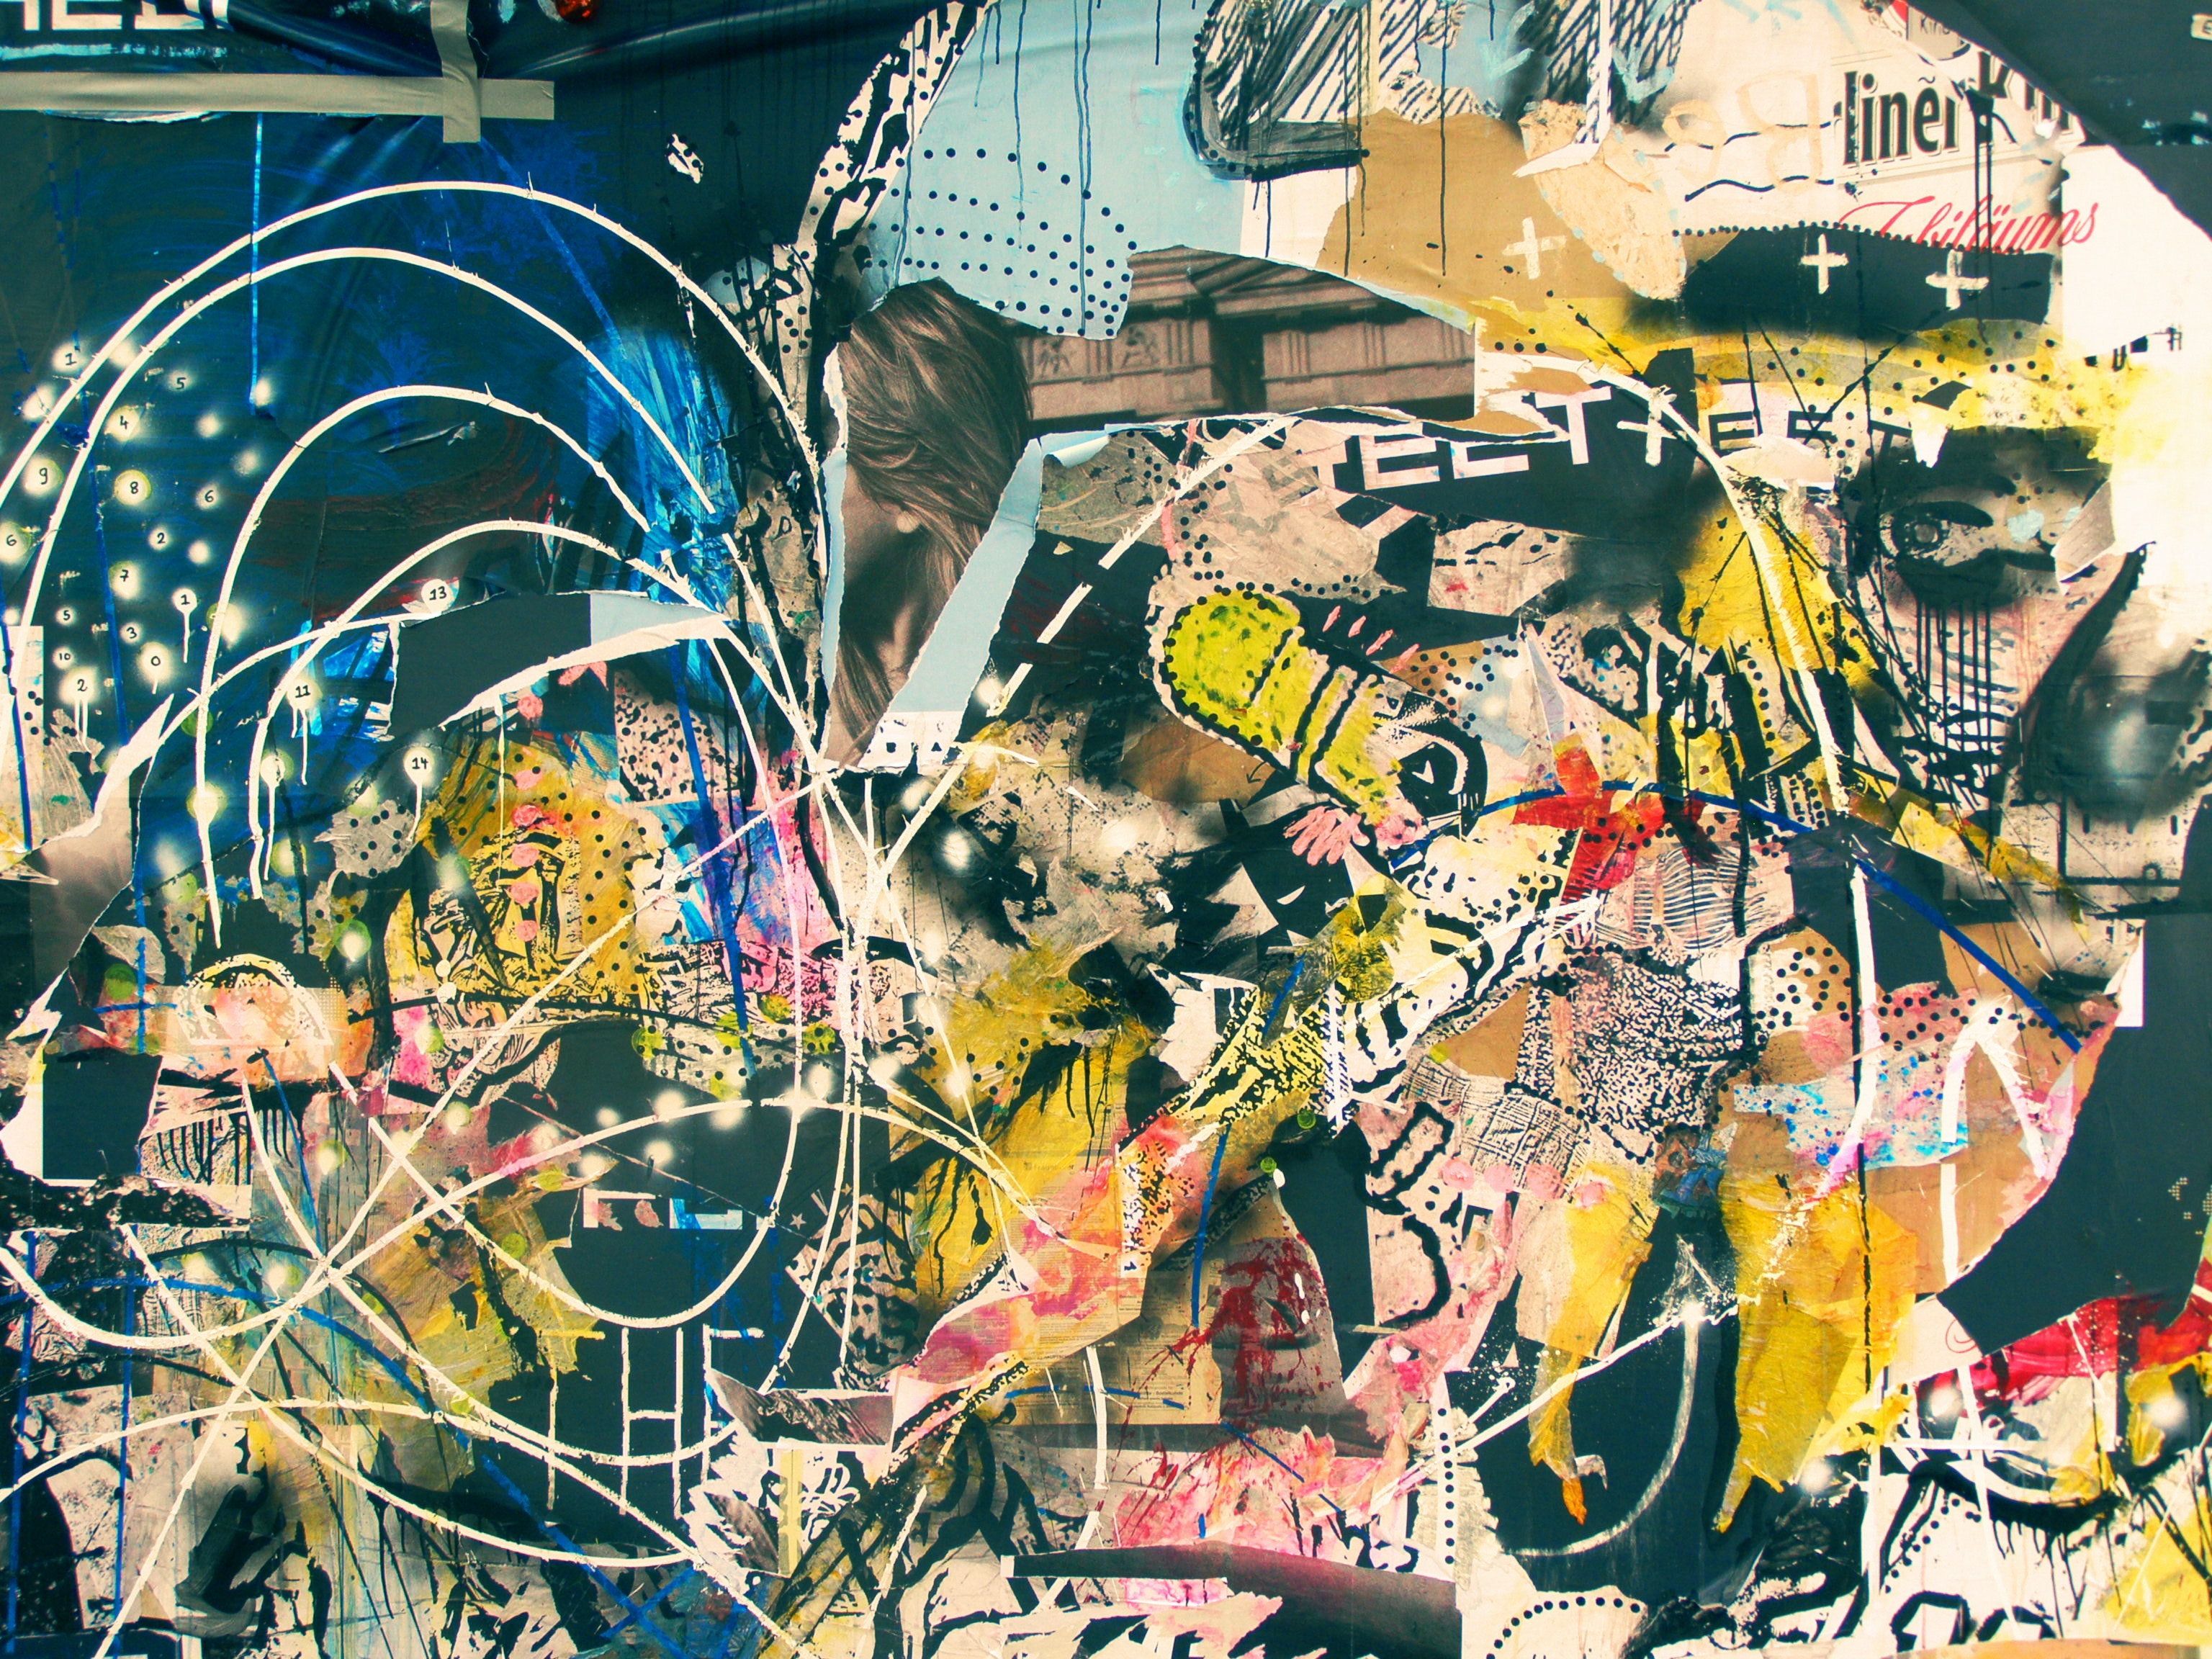 250 engaging graffiti photos pexels free stock photos rh pexels com free stock architecture images free stock art for commercial use